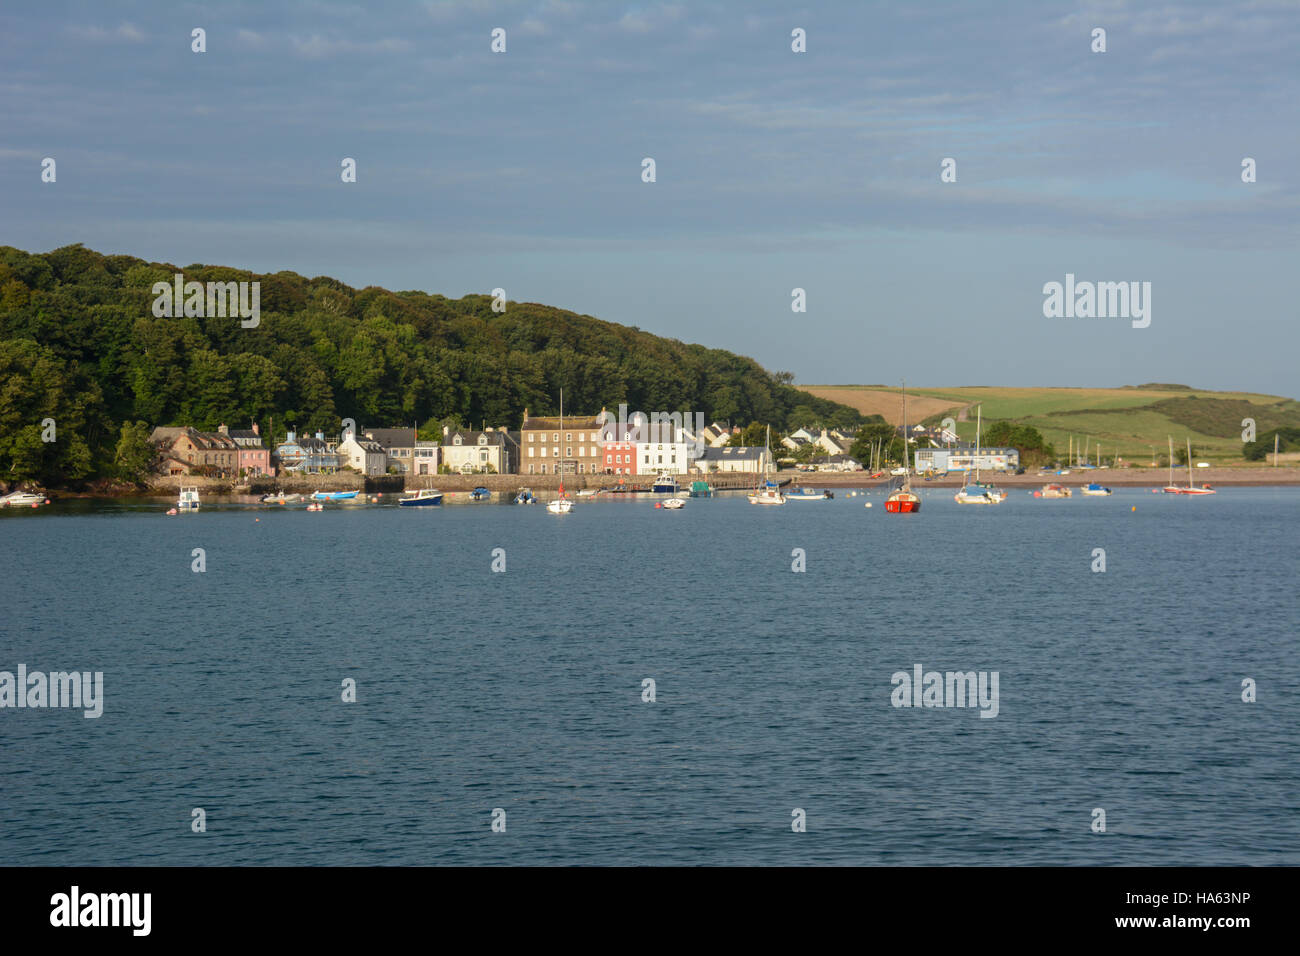 View of Dale village from a yacht anchored in the bay. Blue summer sky with white clouds, blue sea with ripples. - Stock Image